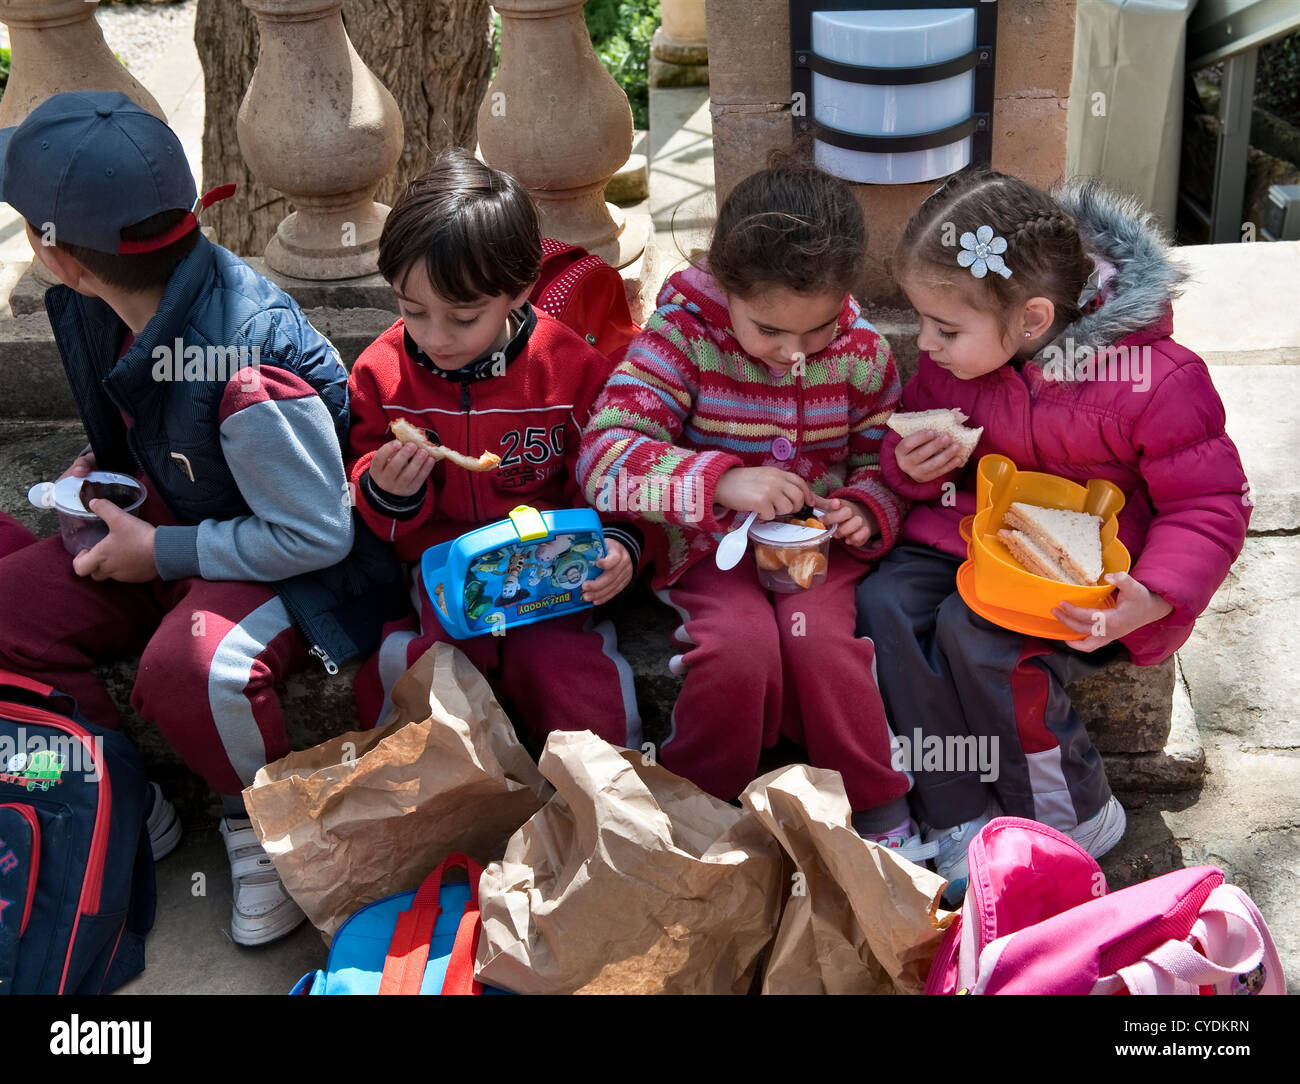 Malta. Small children eating their packed lunches while on a school trip to the President's Kitchen Garden - Stock Image